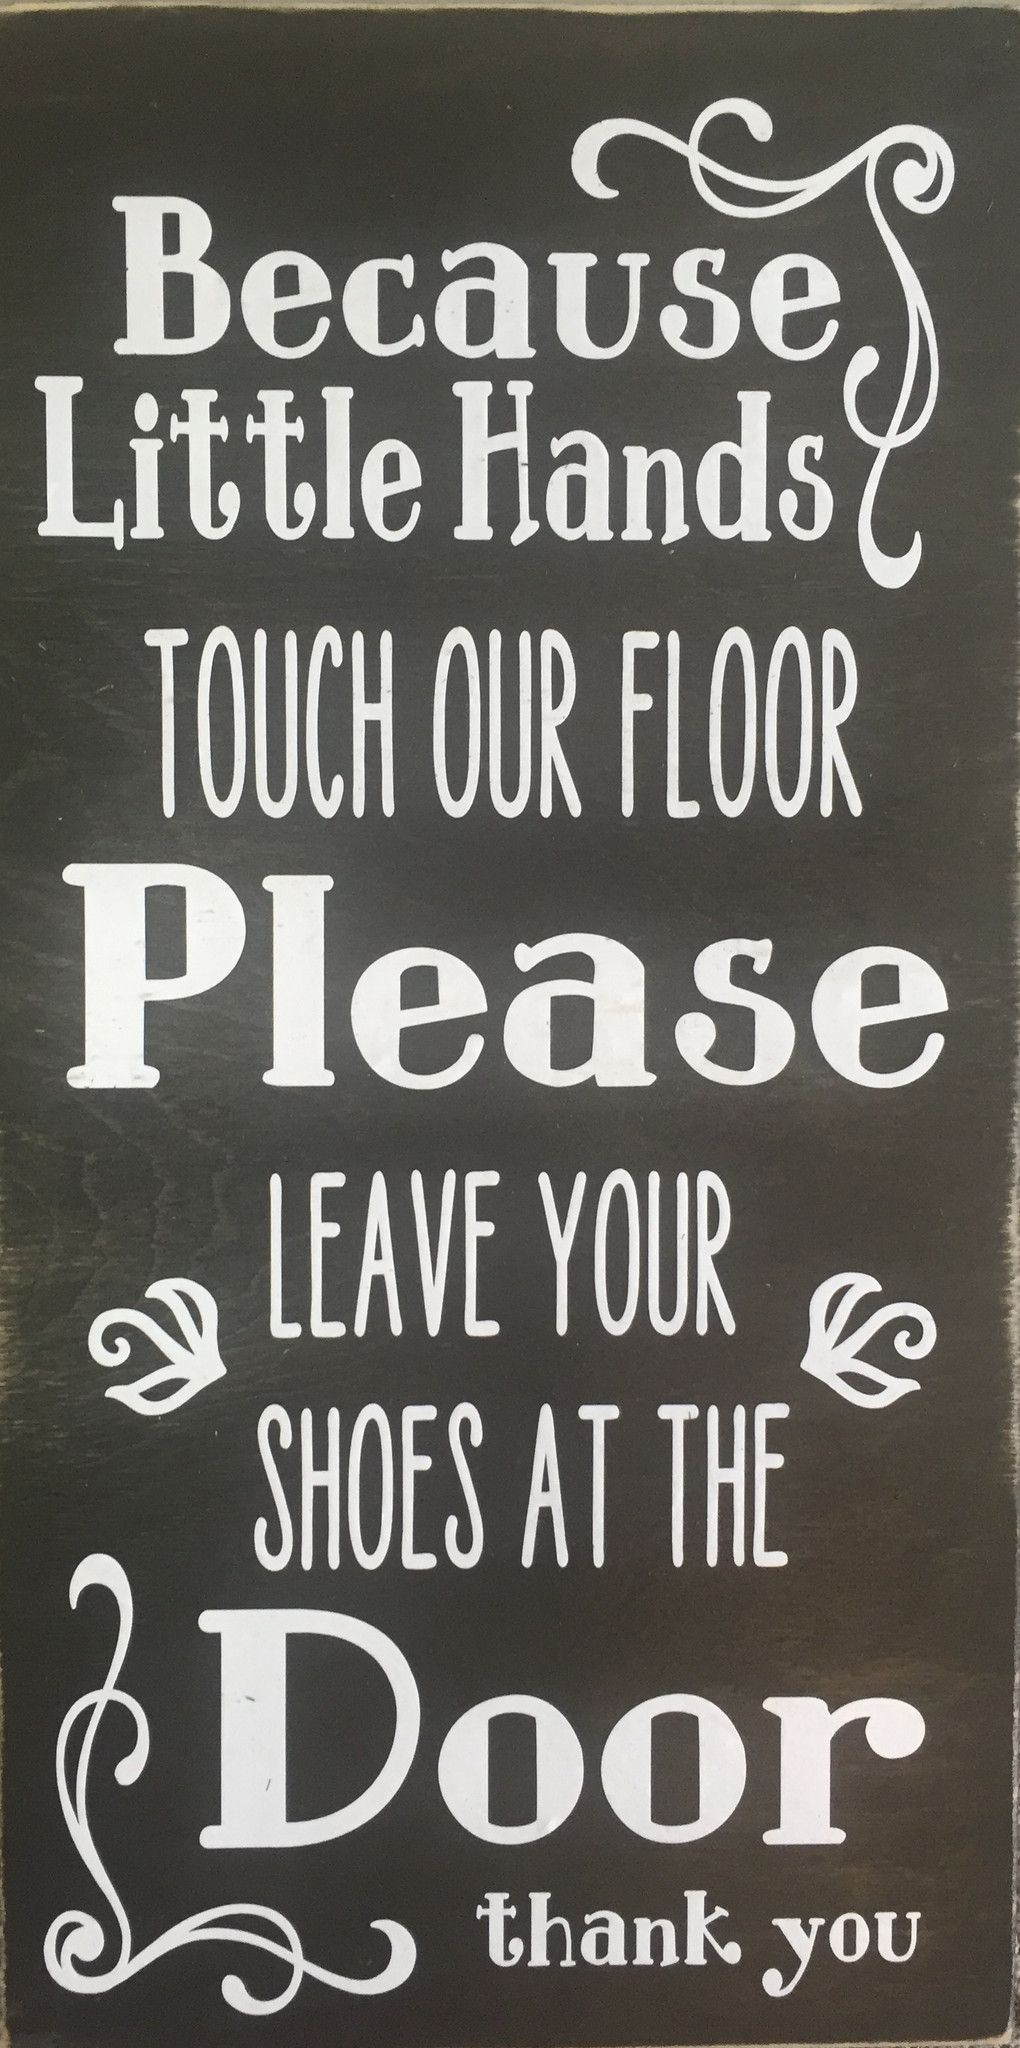 We've always removed our shoes anyway, but this will let our guests know that there's a good reason for it!